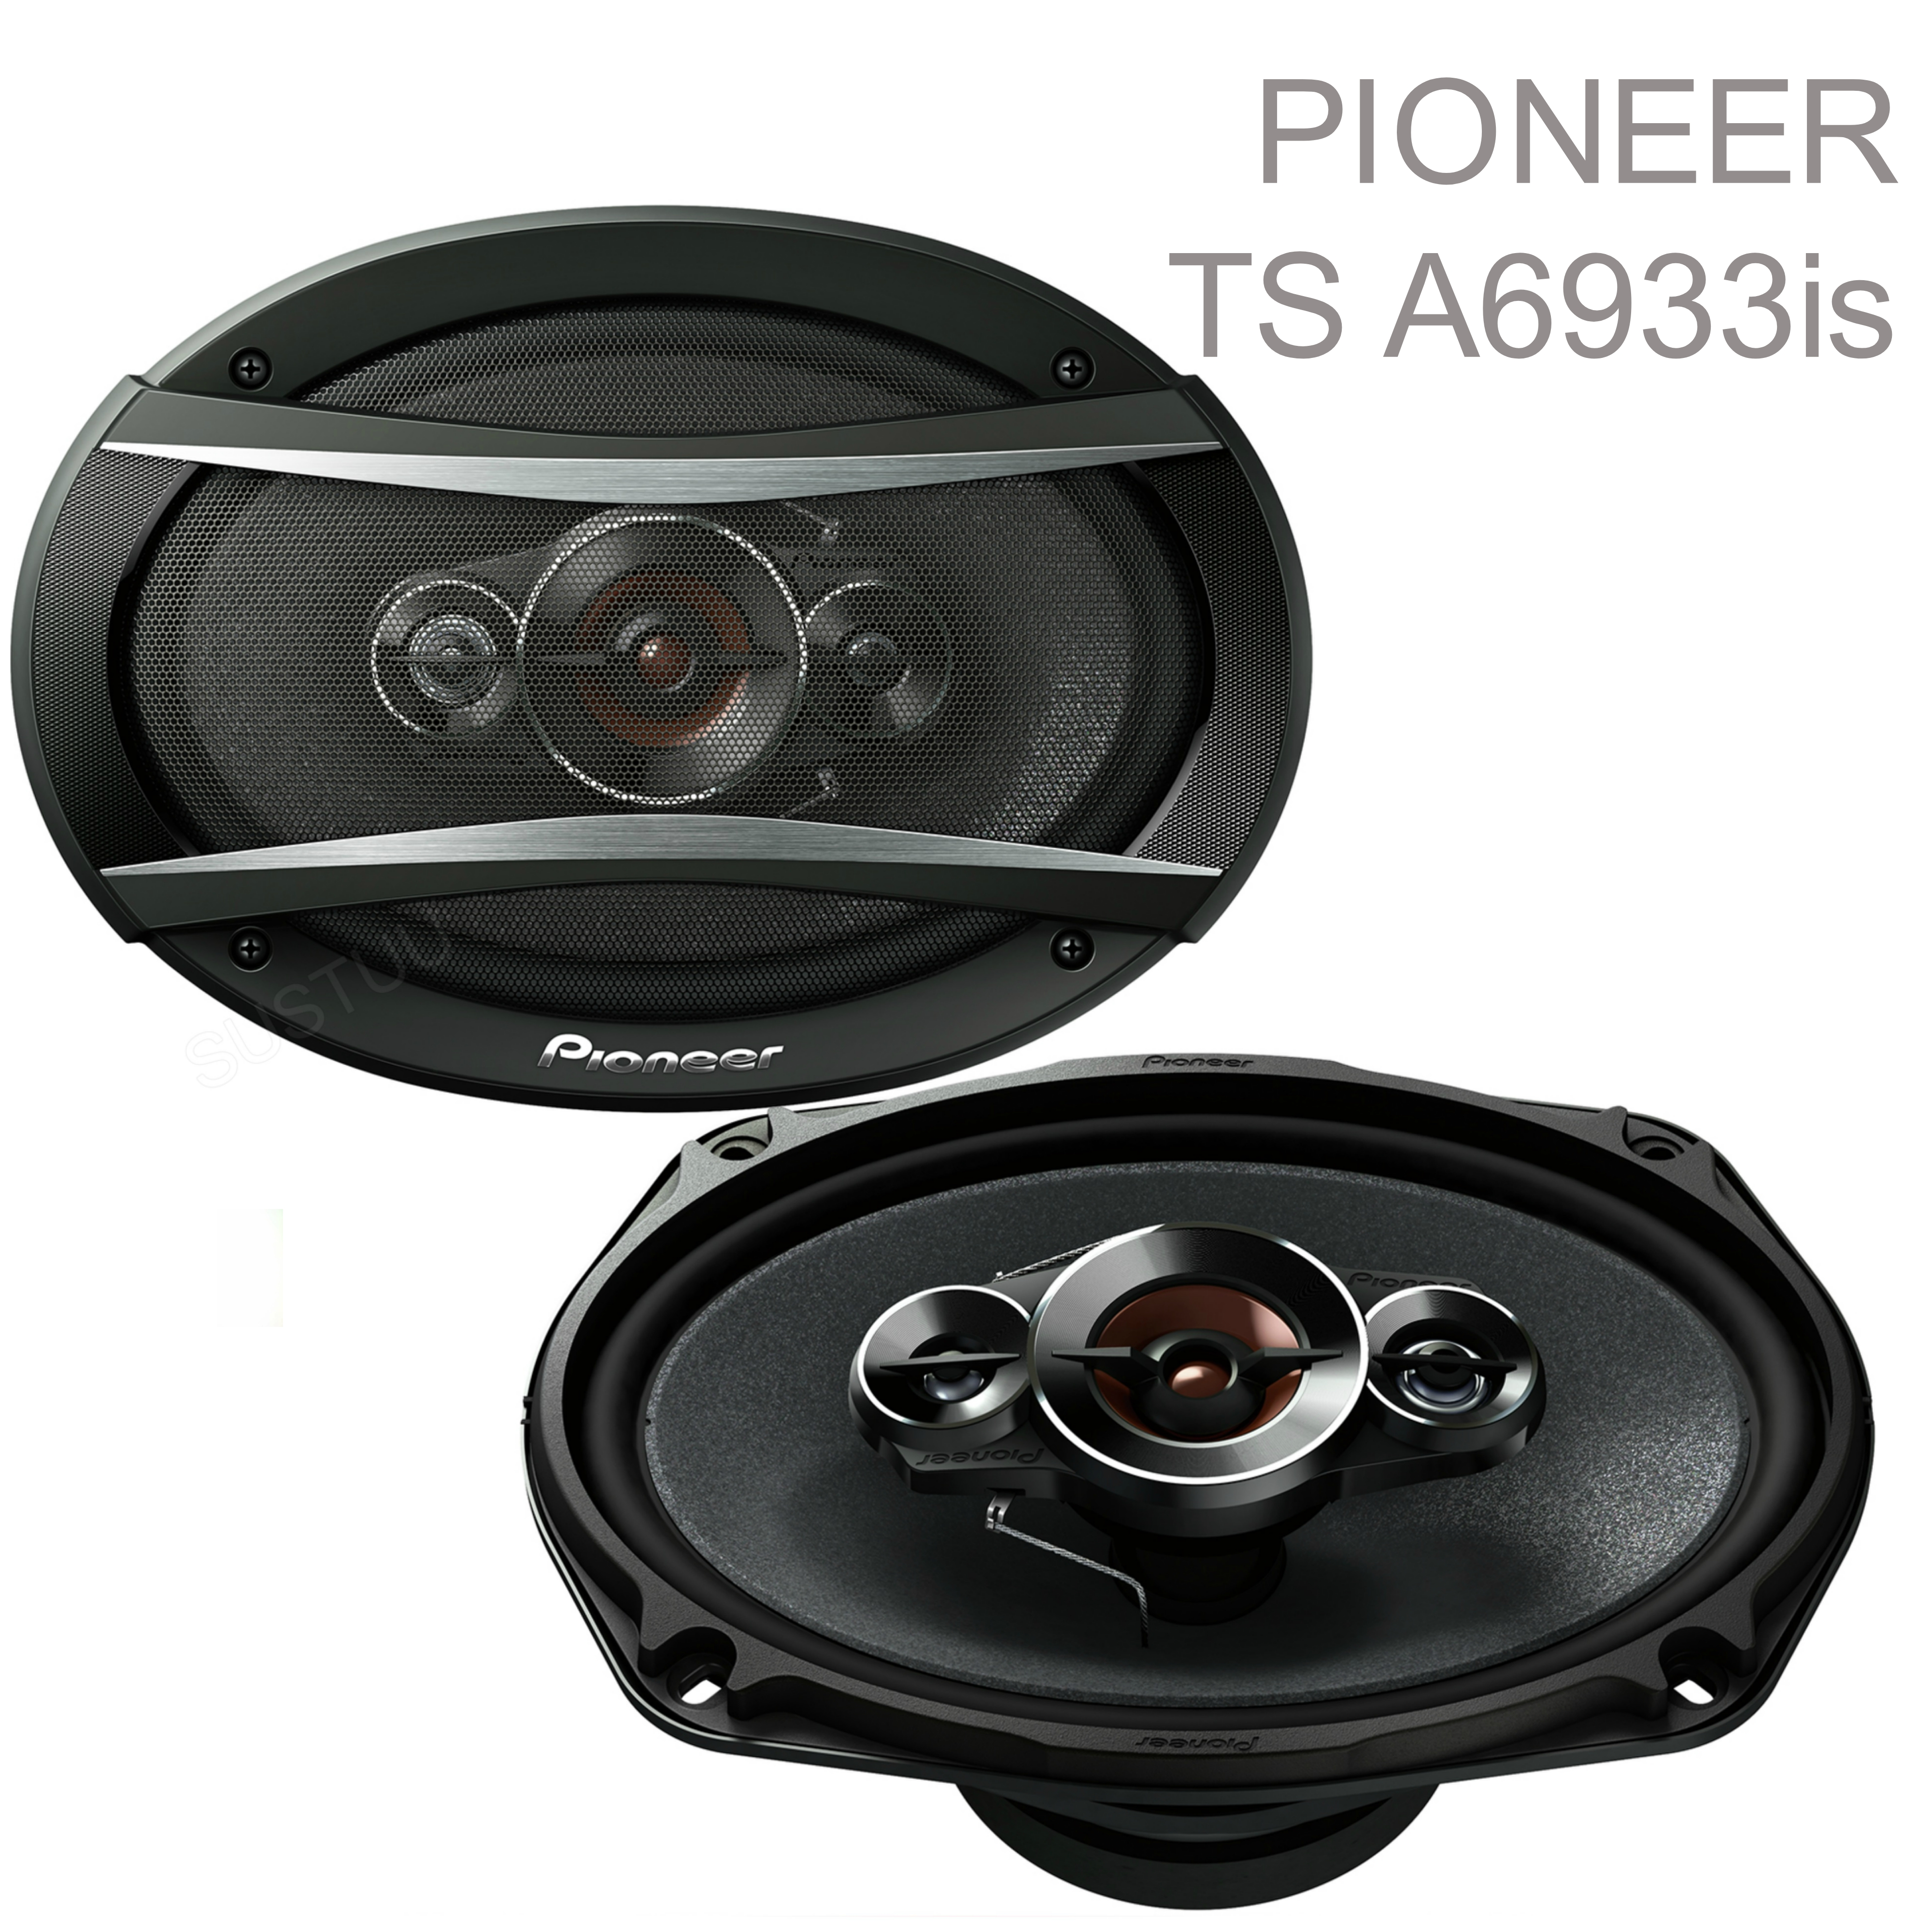 "PIONEER TS A6933is 6x9"" 3 Way Carbon Graphite Coaxial Car Audiol Speaker - NEW"